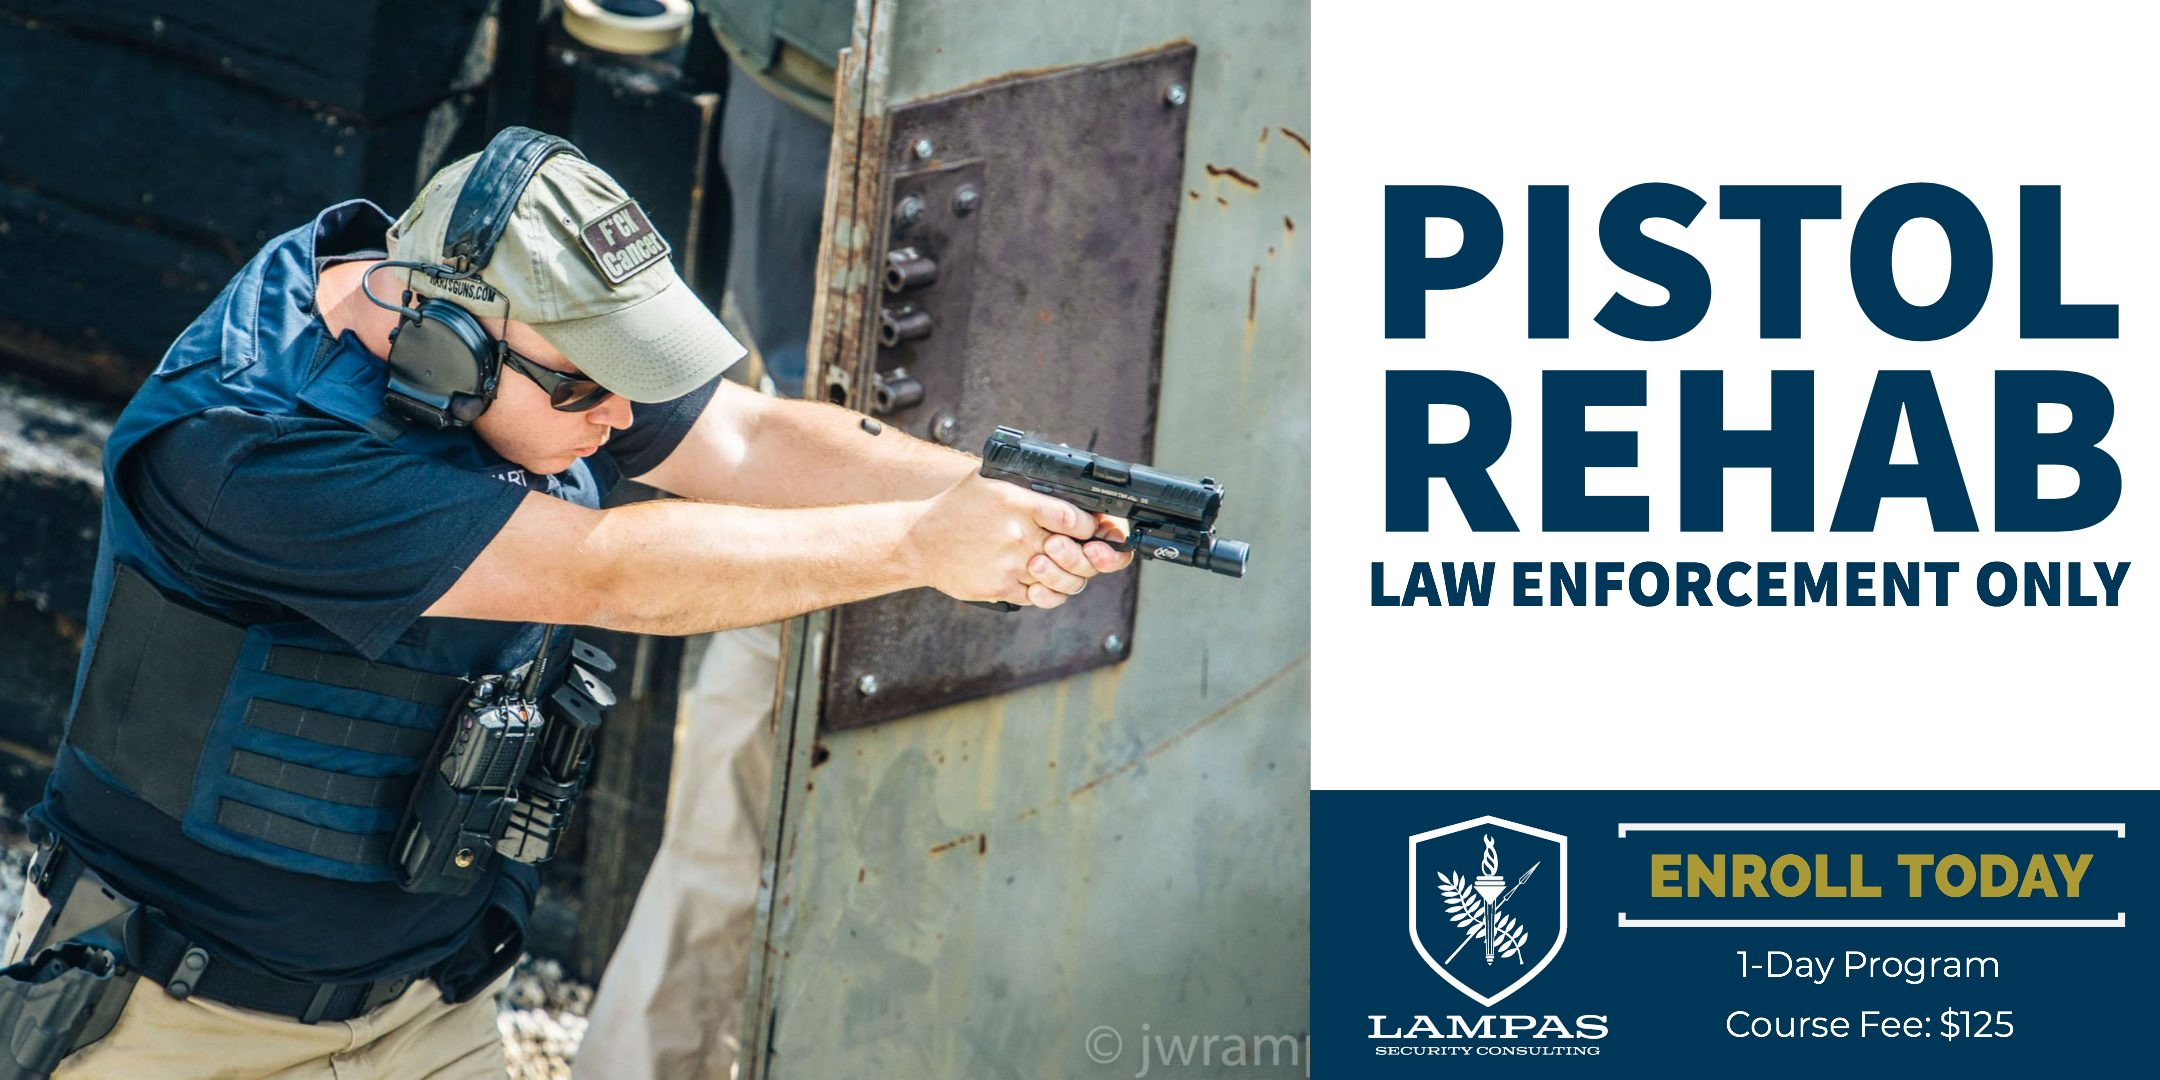 PISTOL REHAB (LAW ENFORCEMENT ONLY) – Lampas Security Consulting